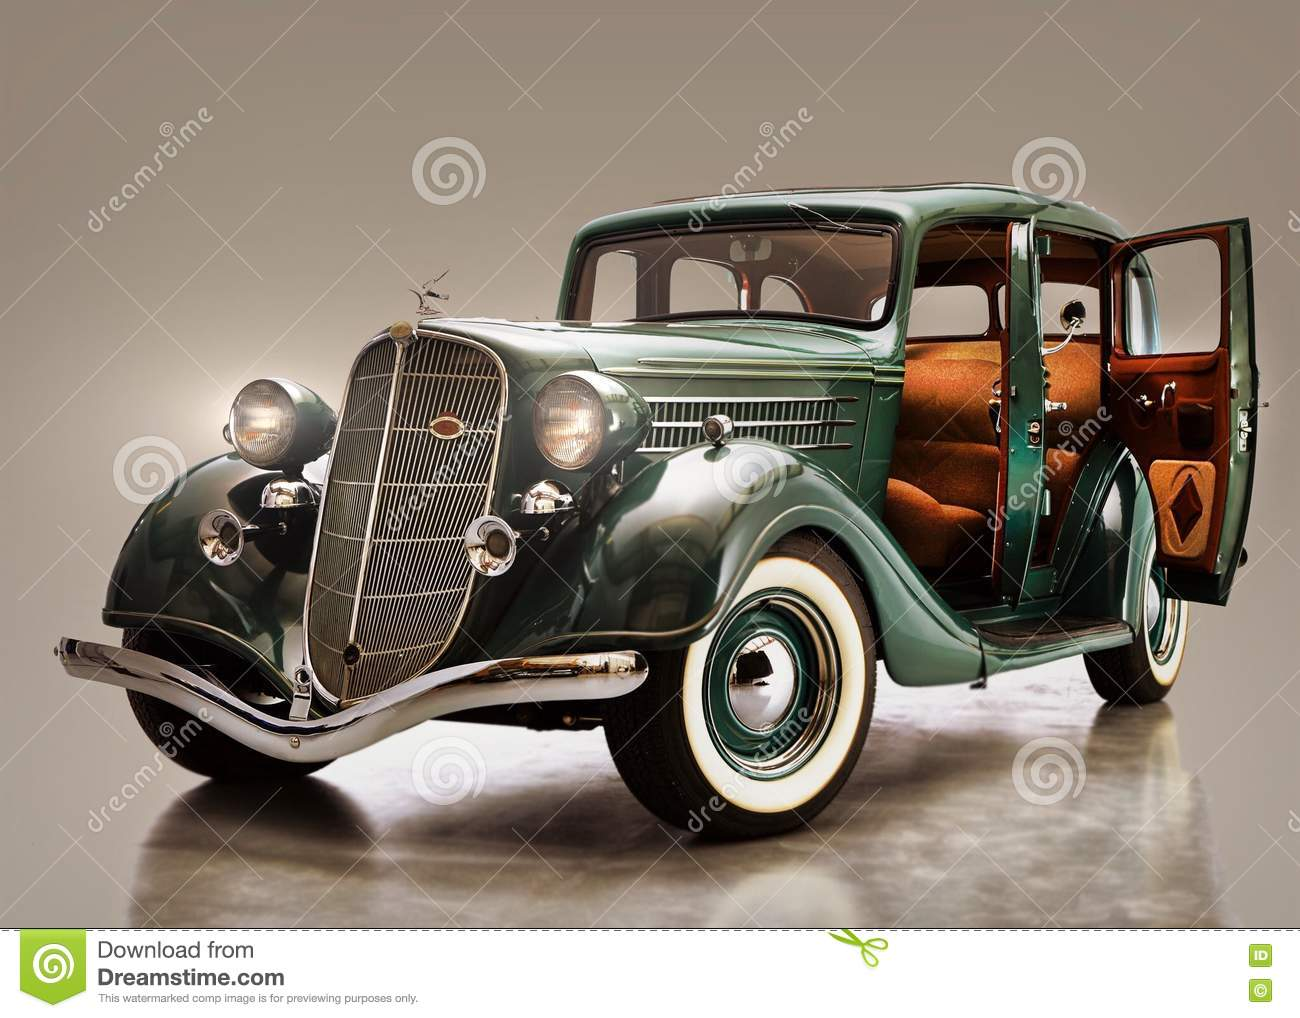 Classic Gangster Car From The 1930\'s Stock Image - Image of wanted ...